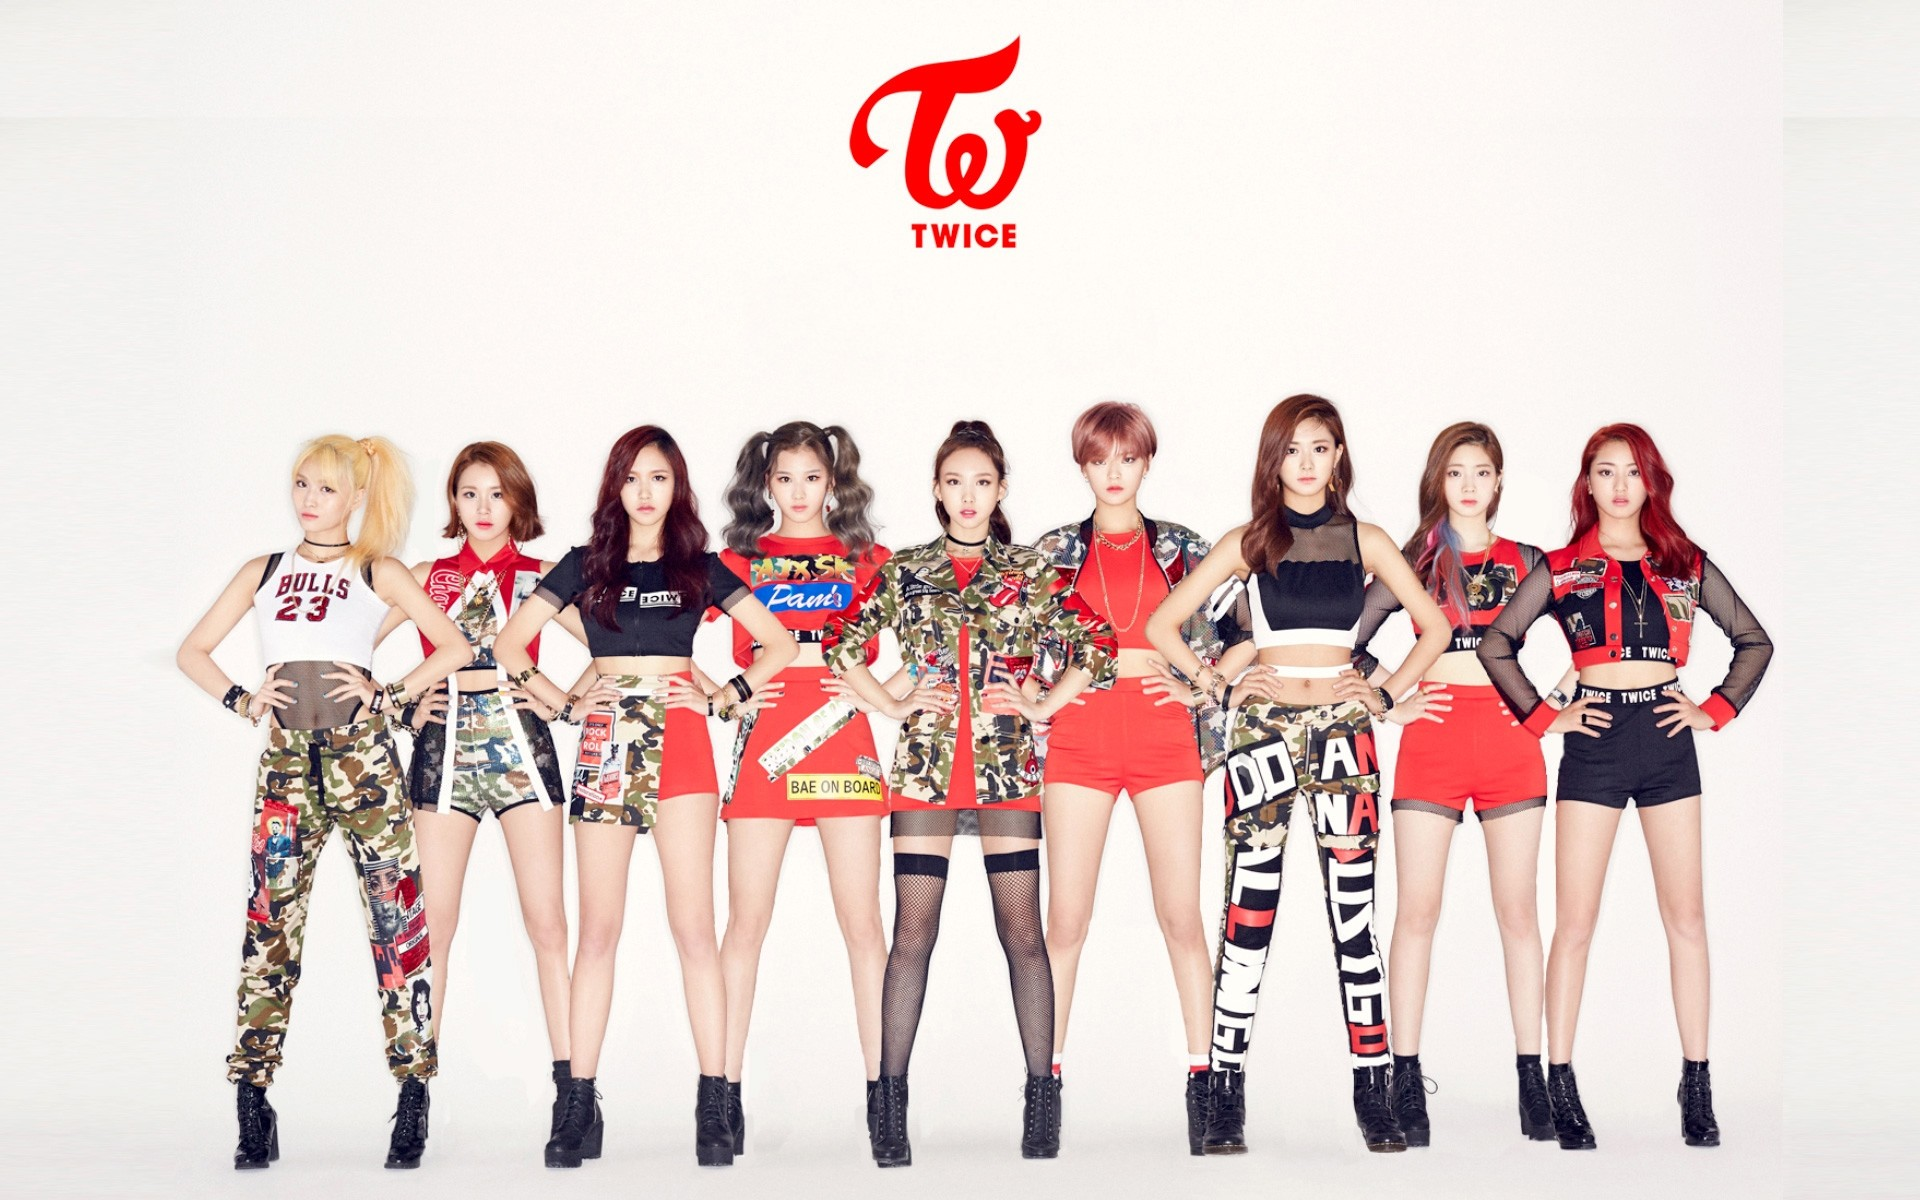 1920x1200 TWICE 1 Really love their debut and Like Ooh-Ahh. I saw someone posted  their Cheer Up Promotion image in this thread, gonna steal that hehe